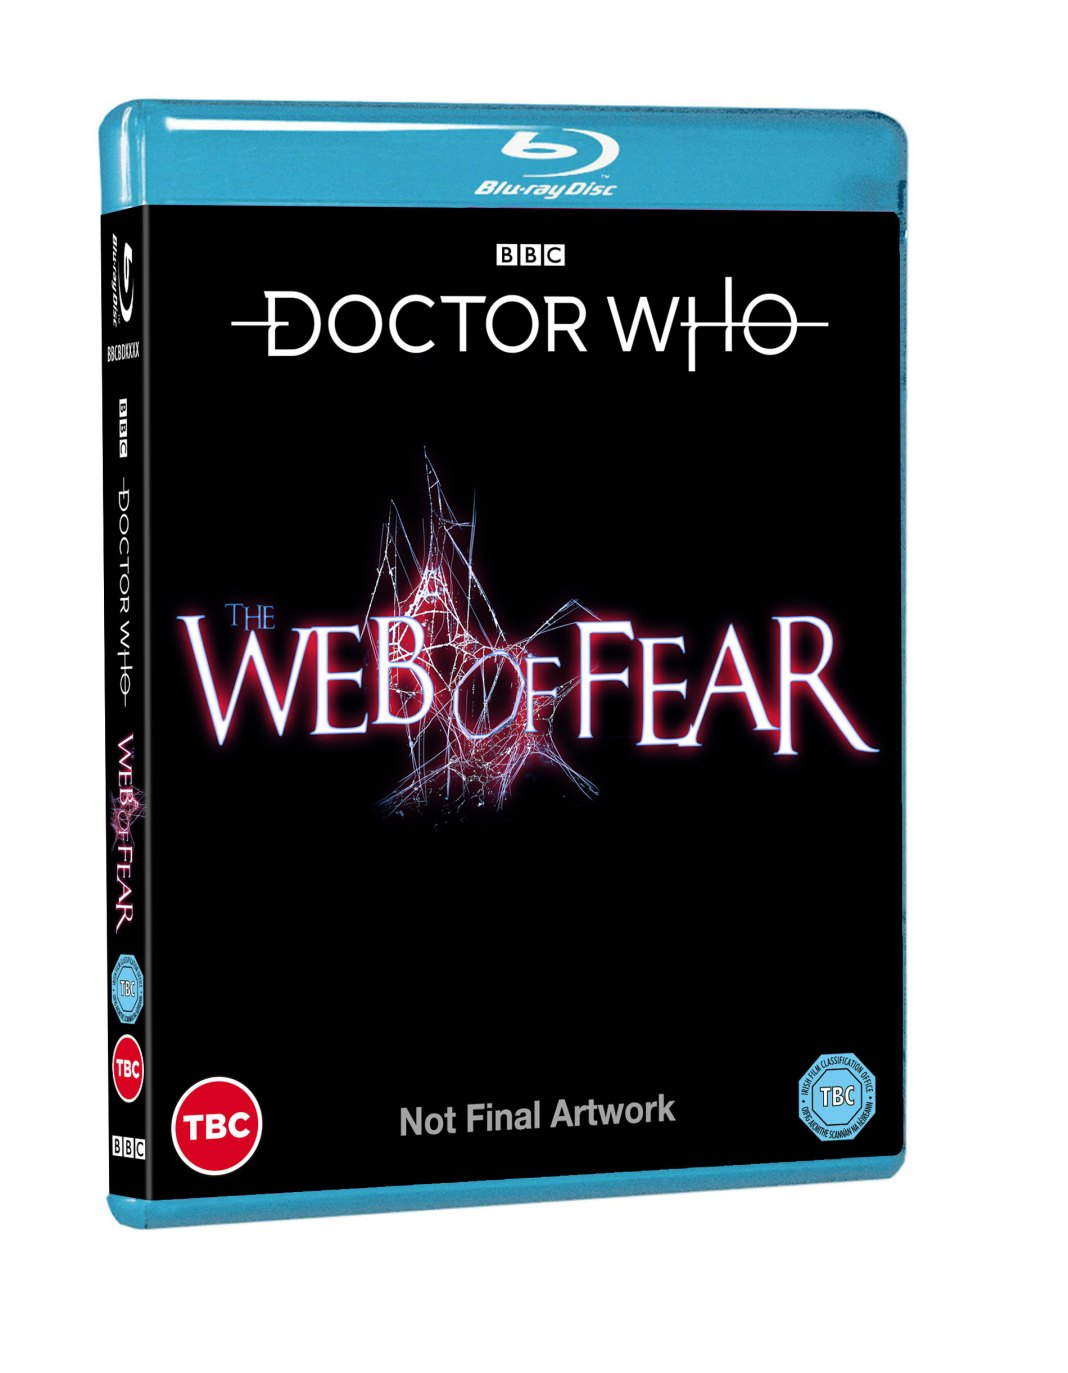 Placeholder cover for the Web of Fear Blu-ray release (c) BBC Studios Doctor Who Second Doctor Patrick Troughton Victoria Waterfield Jamie McCrimmon Yeti Great Intelligence Blu-ray